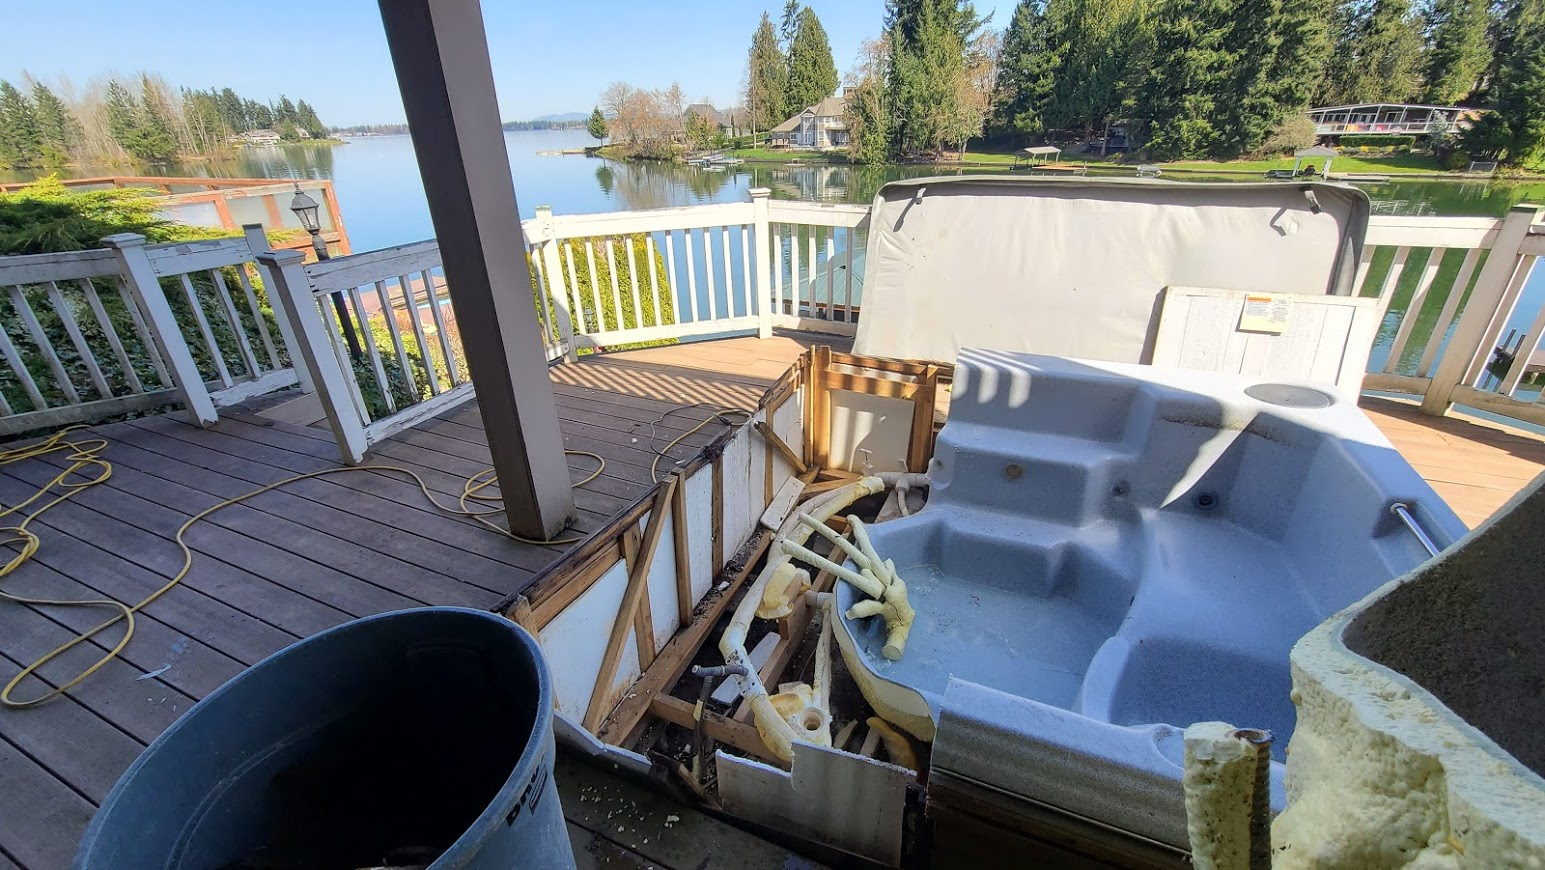 Hot Tub Being Removed